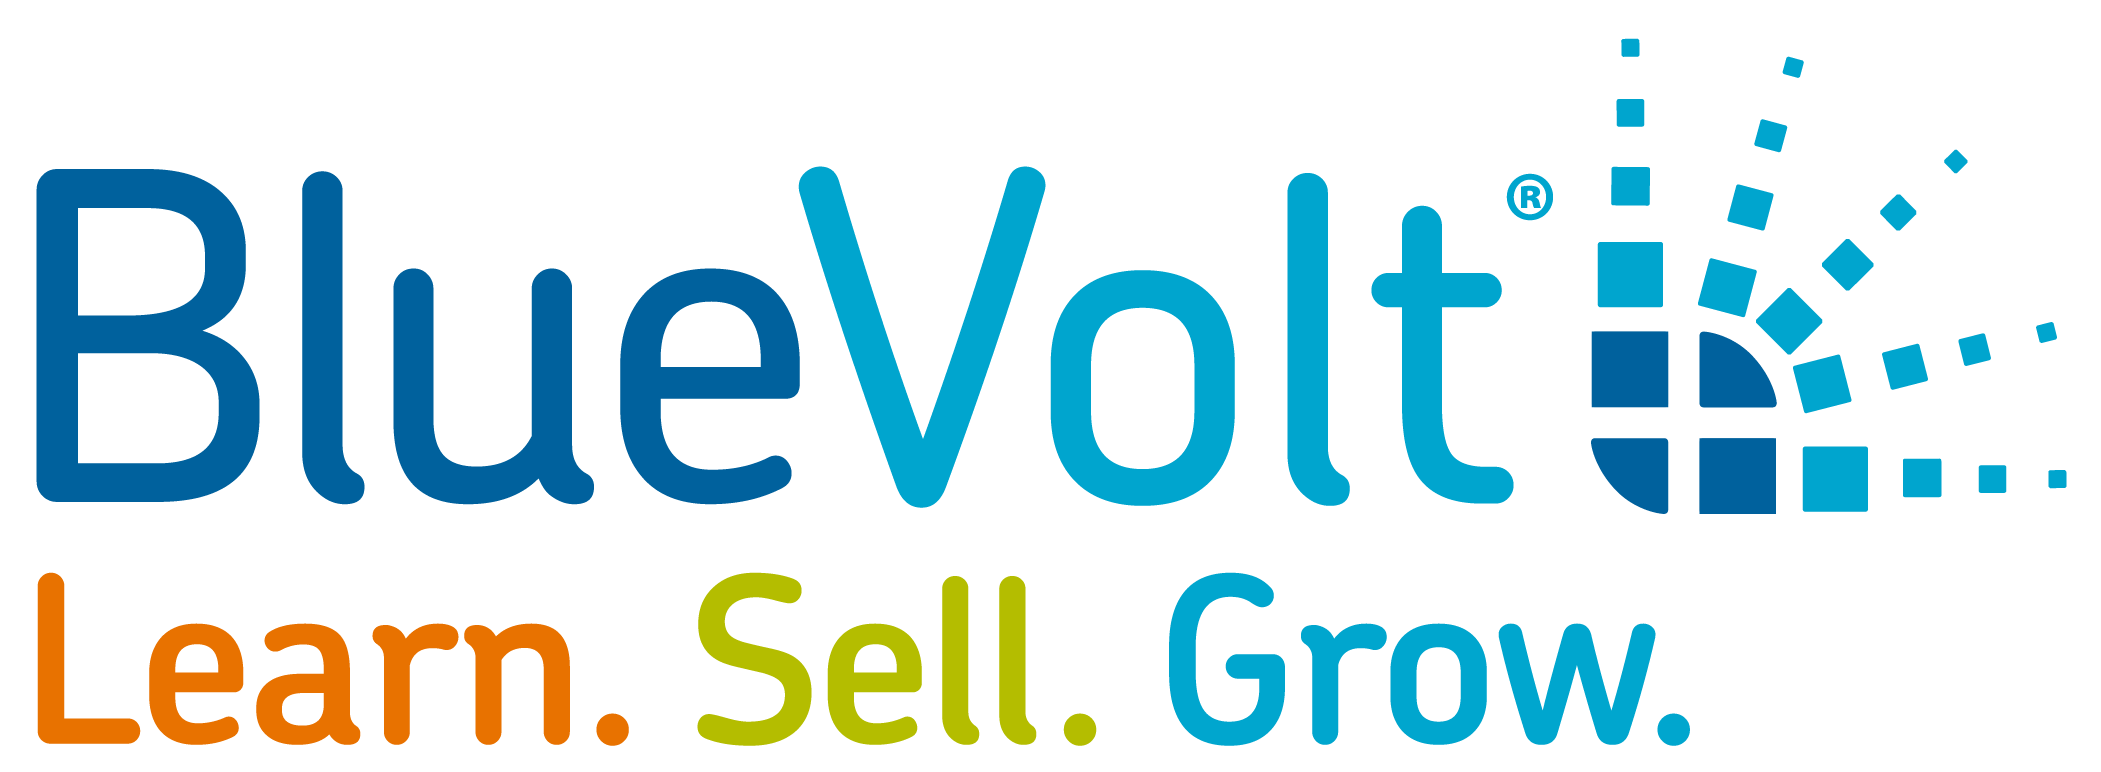 BlueVolt Learn Sell Grow-1